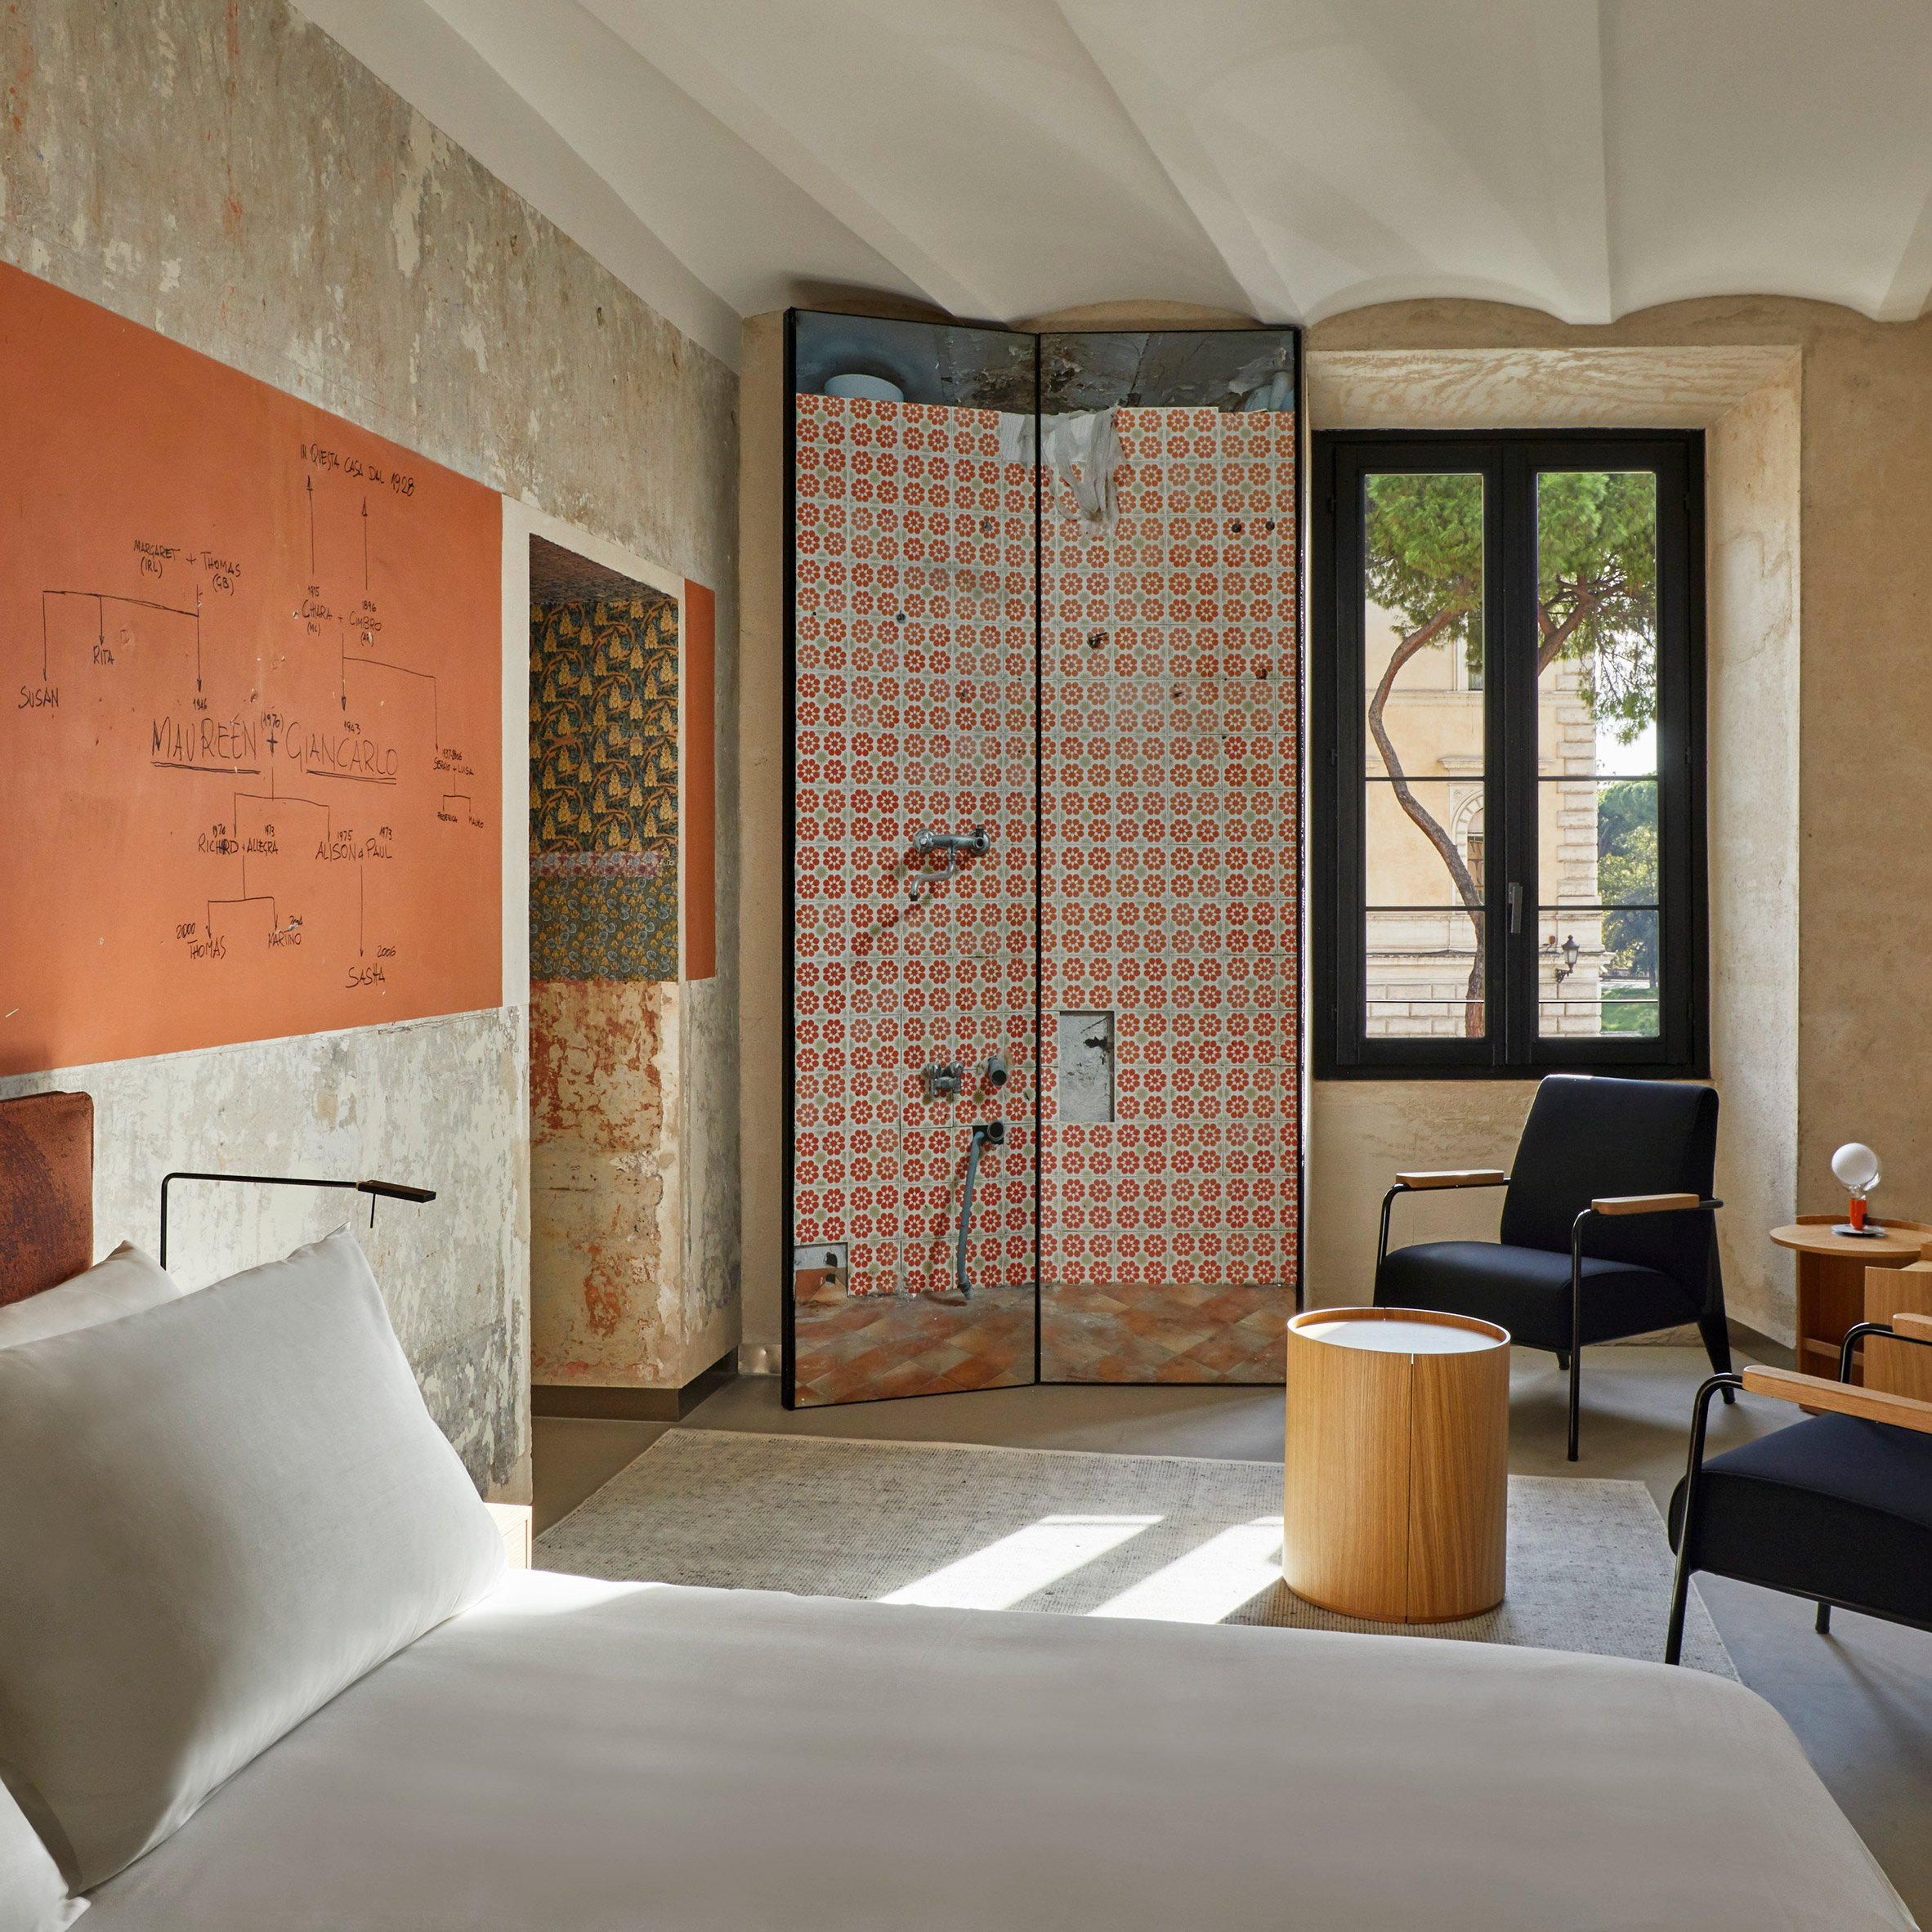 Hotels in Italy: Rooms of Rome guest suites designed by Jean Nouvel